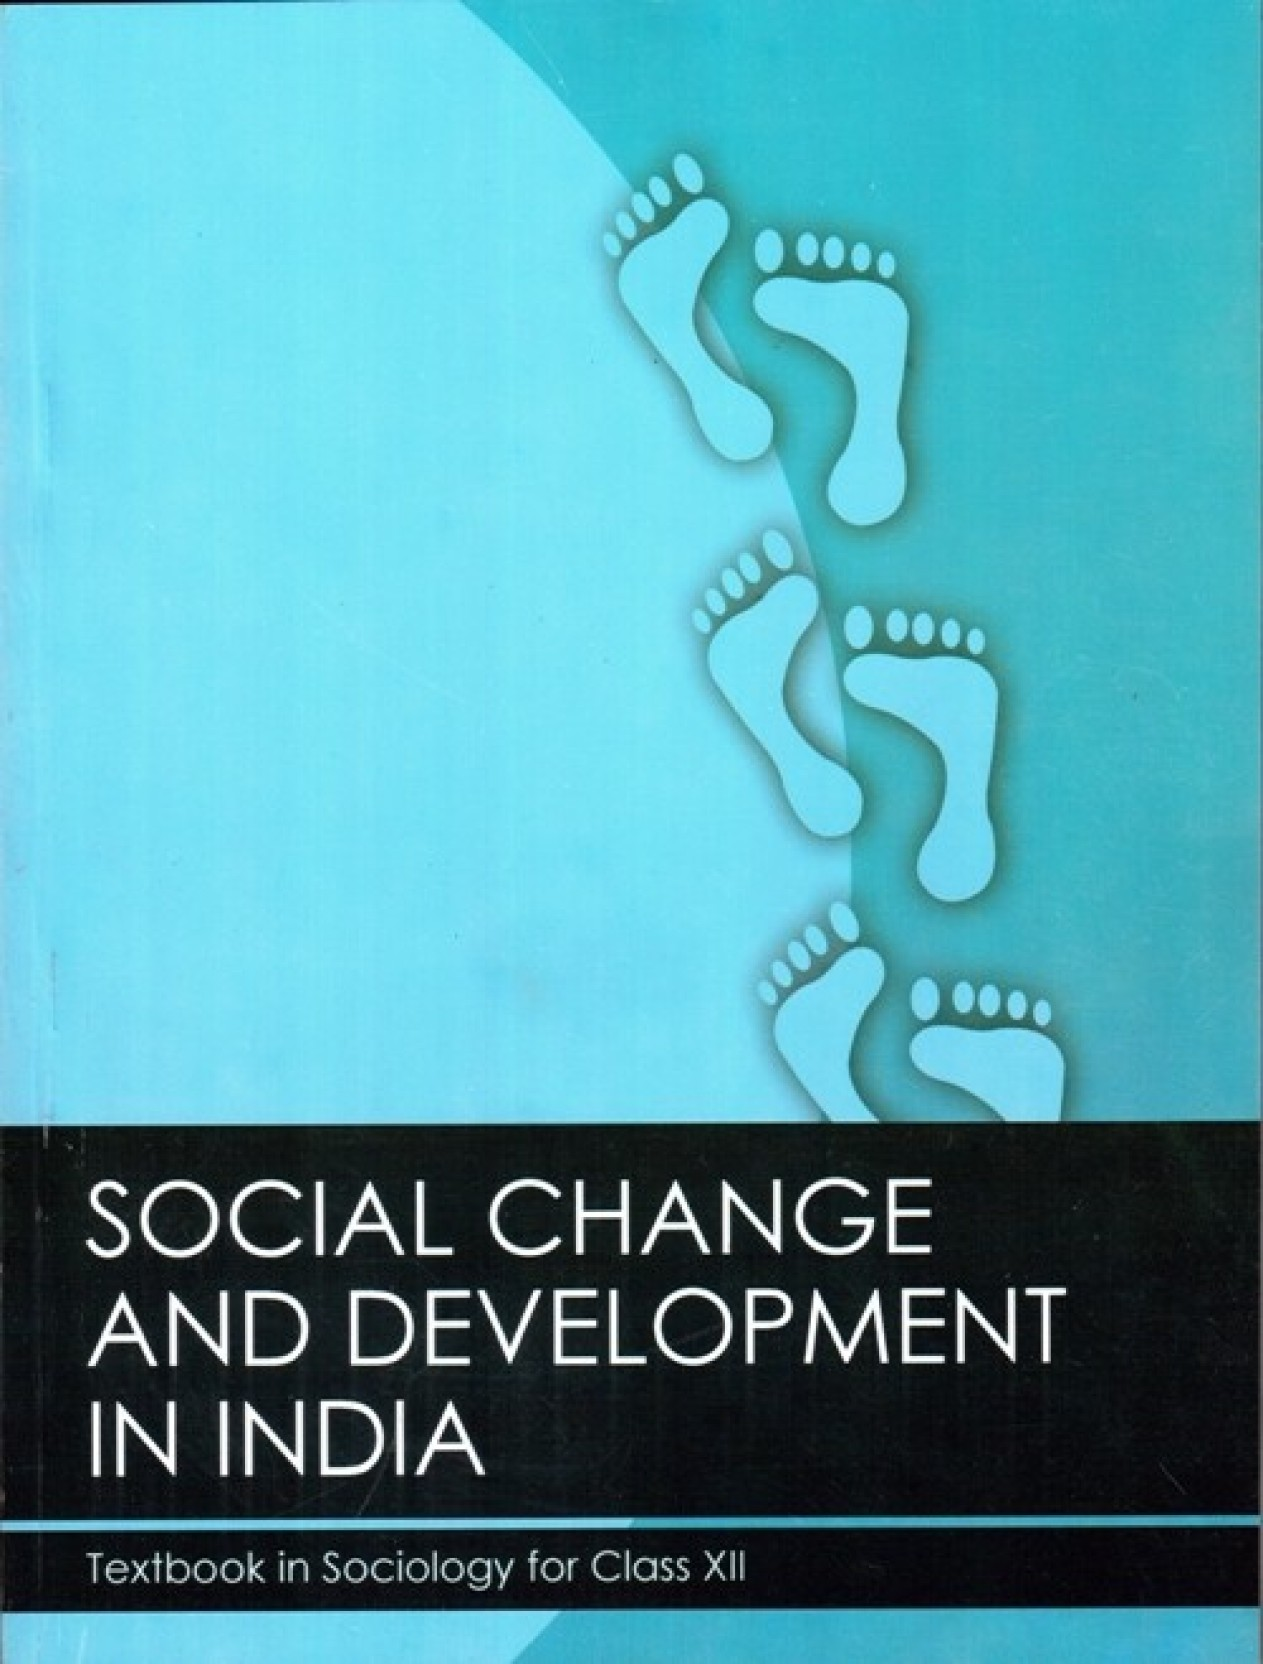 soc 120 social change and modernization Decided to use the terms social change and modernity as the organizing   such as late capitalism and industrial society even though these concepts  figure.